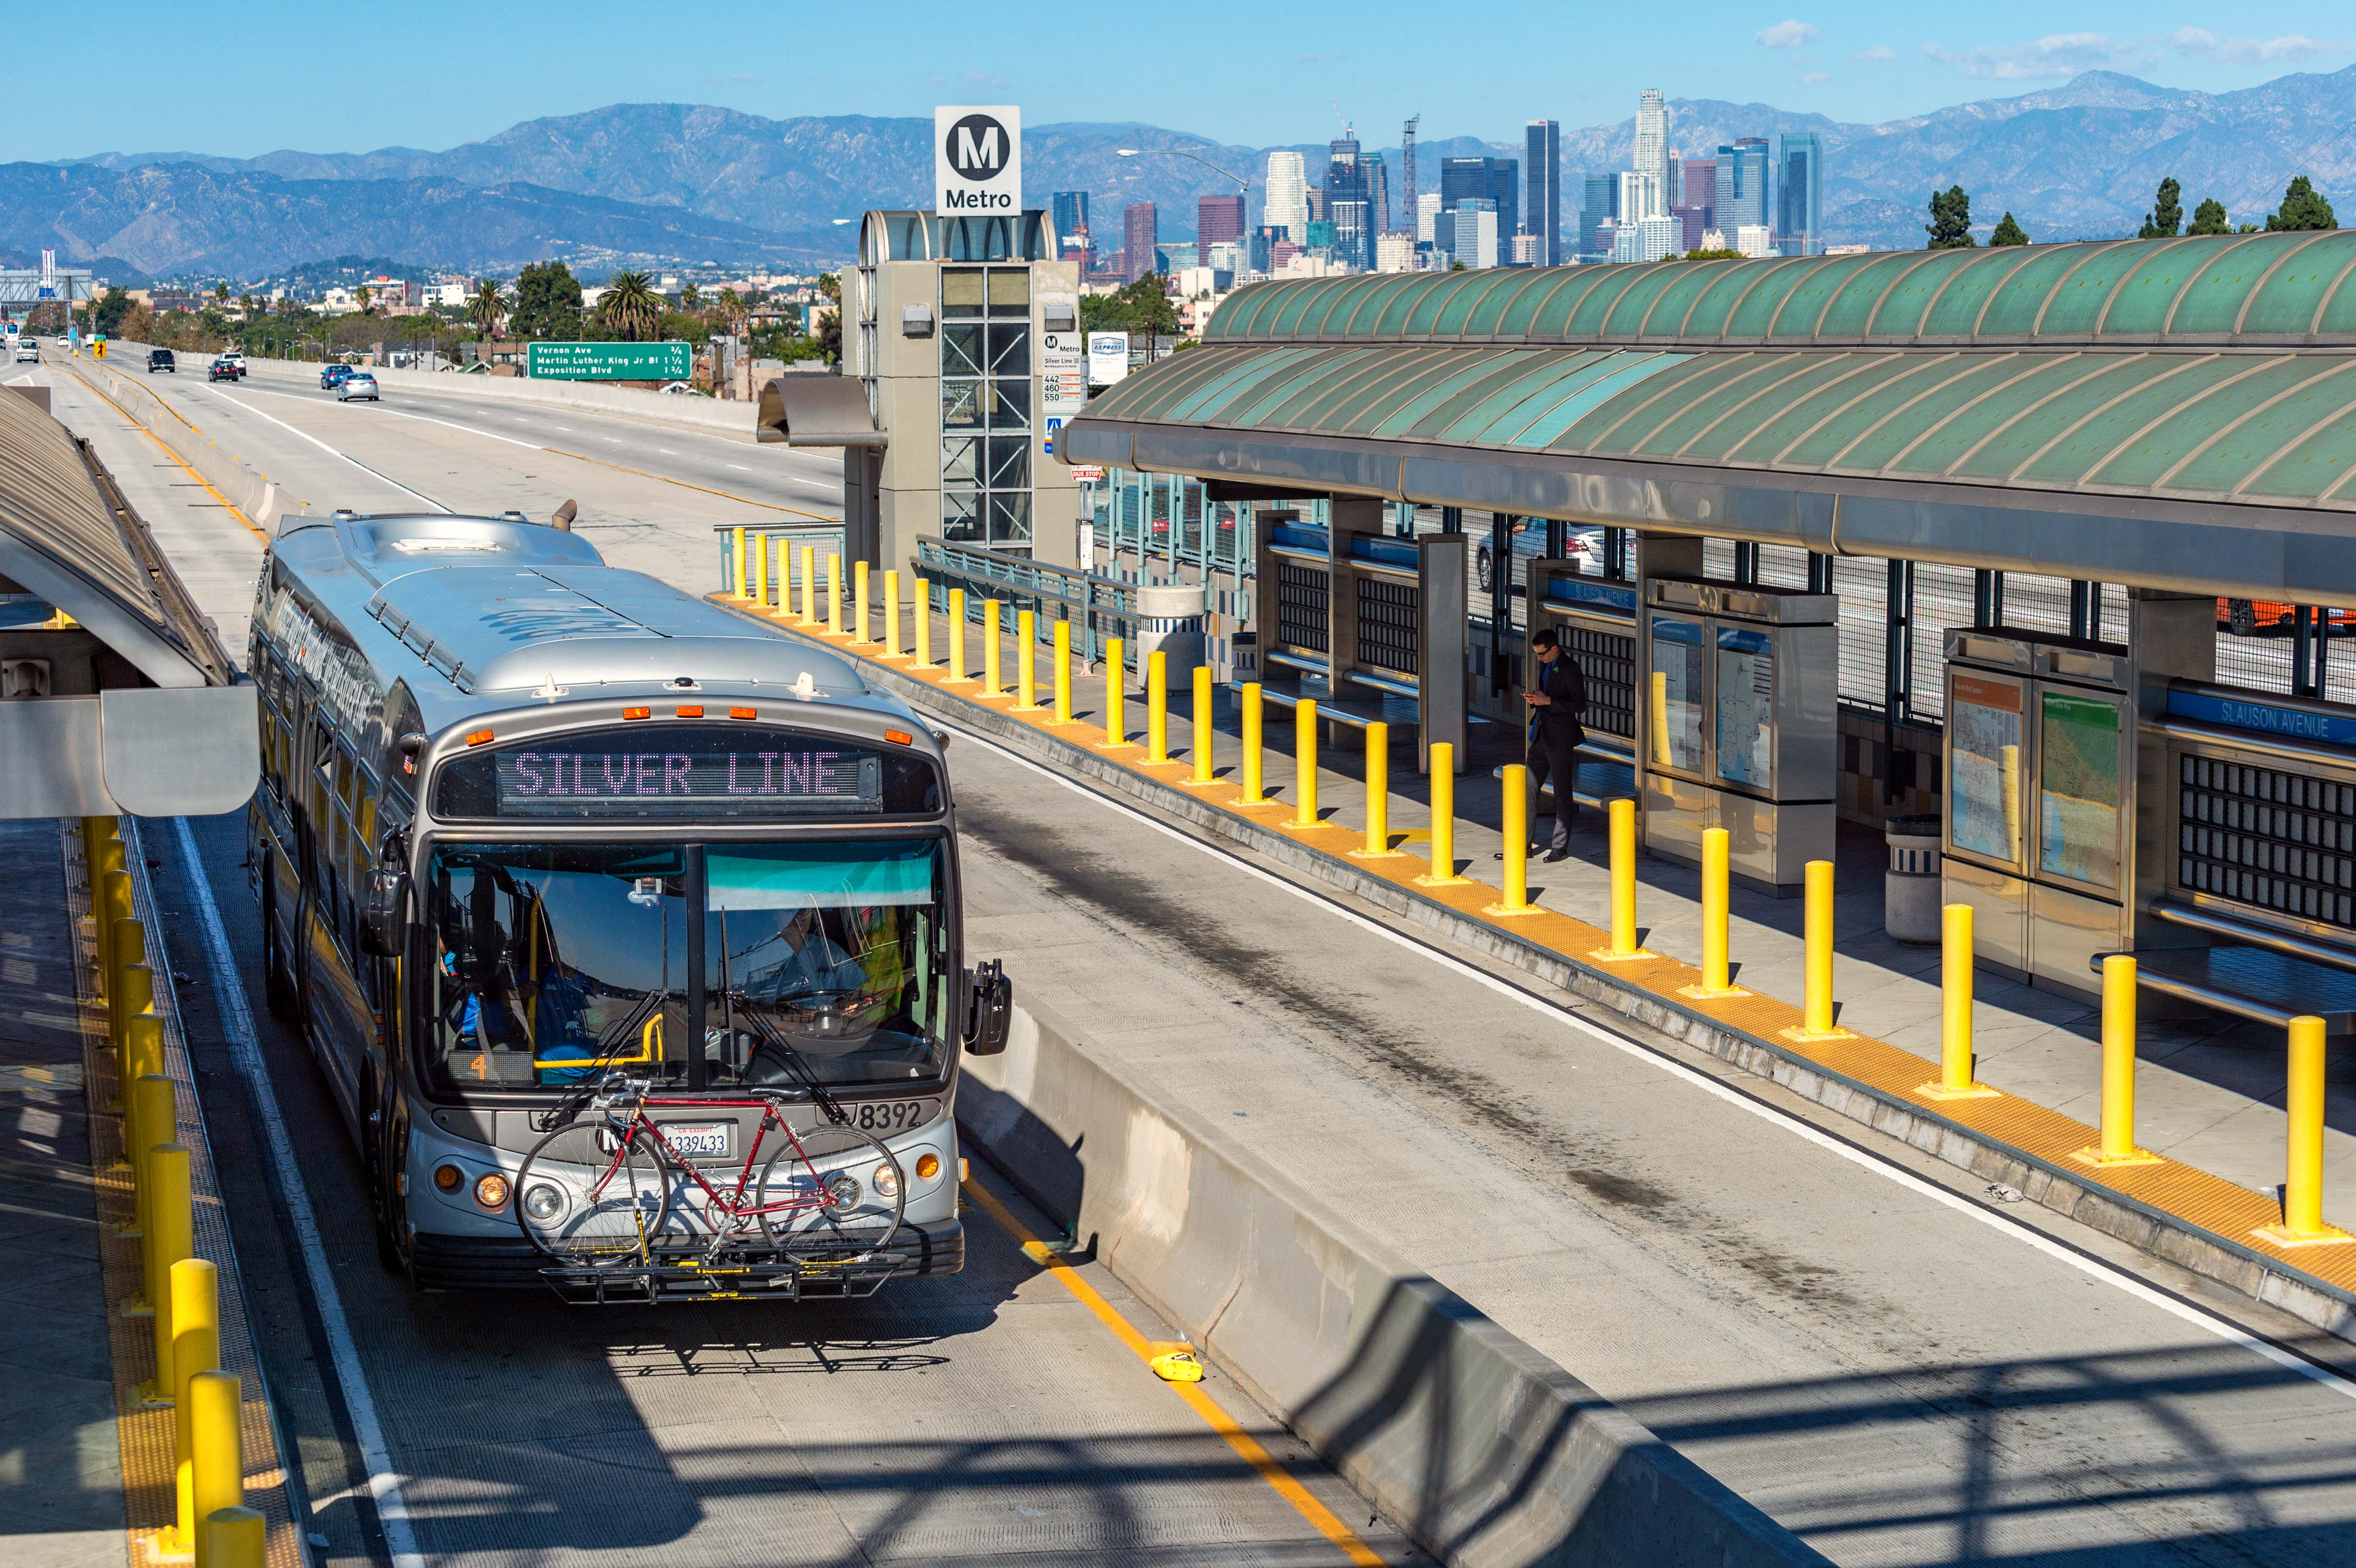 A southbound Silver Line bus on the Harbor Transitway at Slauson Station. The Silver Line will begin running to San Pedro in December. More on that soon! Photo by Steve Hymon/Metro.